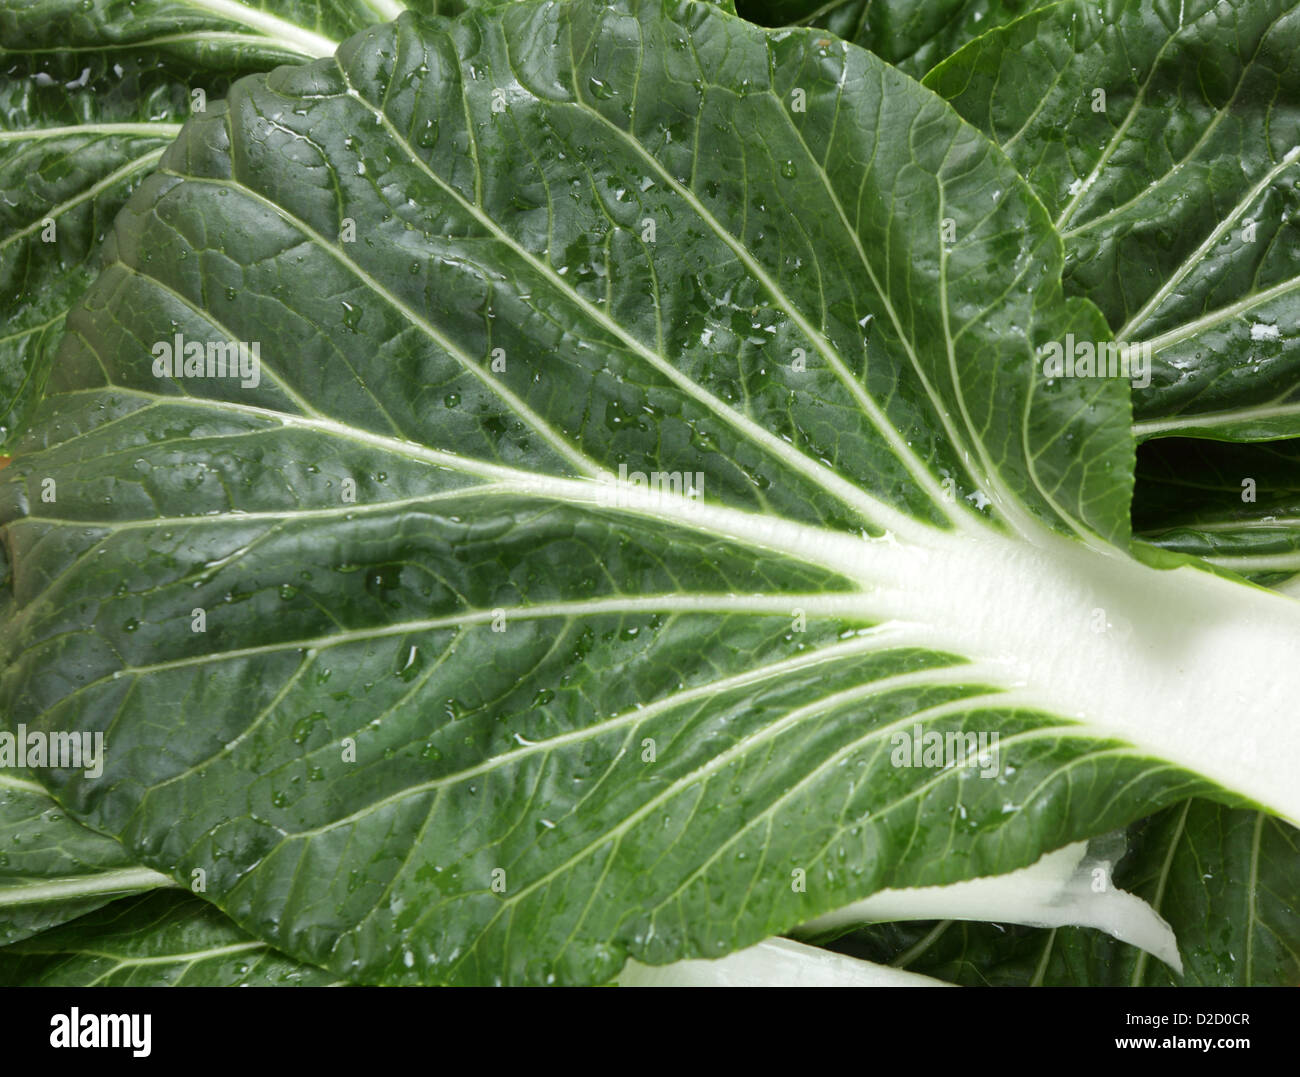 leaves of the extremely popular asian vegetable known as bok choy, pak soi or chinese cabbage in the west, - Stock Image